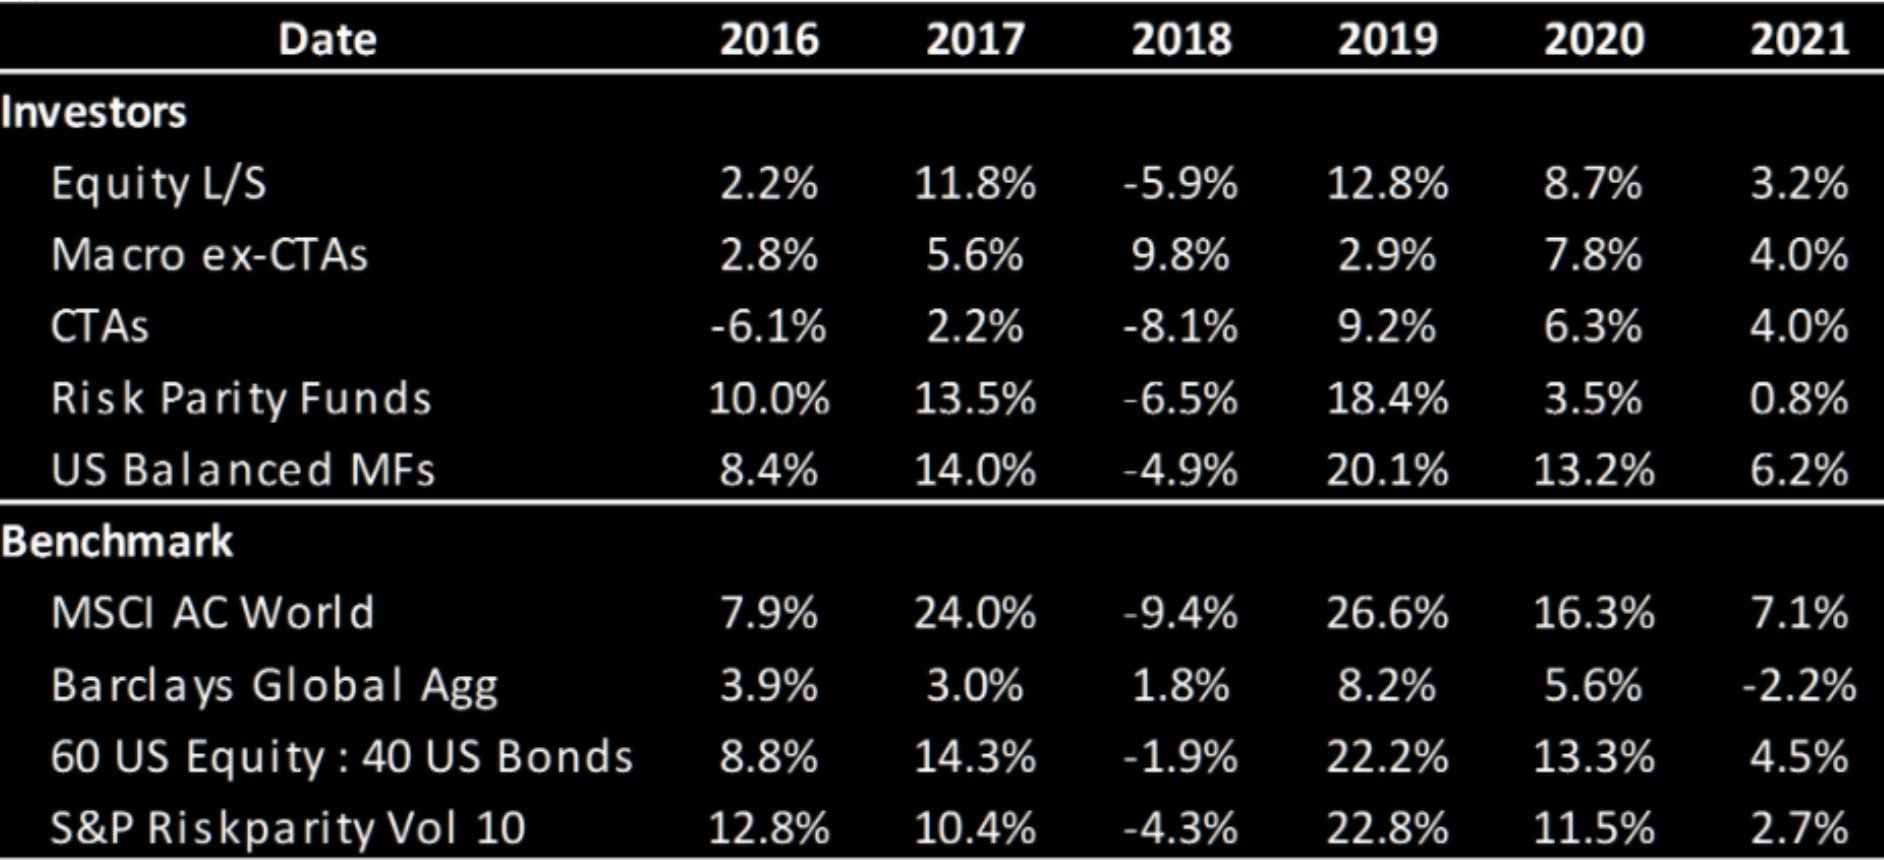 The table depicts the performance of various types of investors in % as of 7th April 2021.